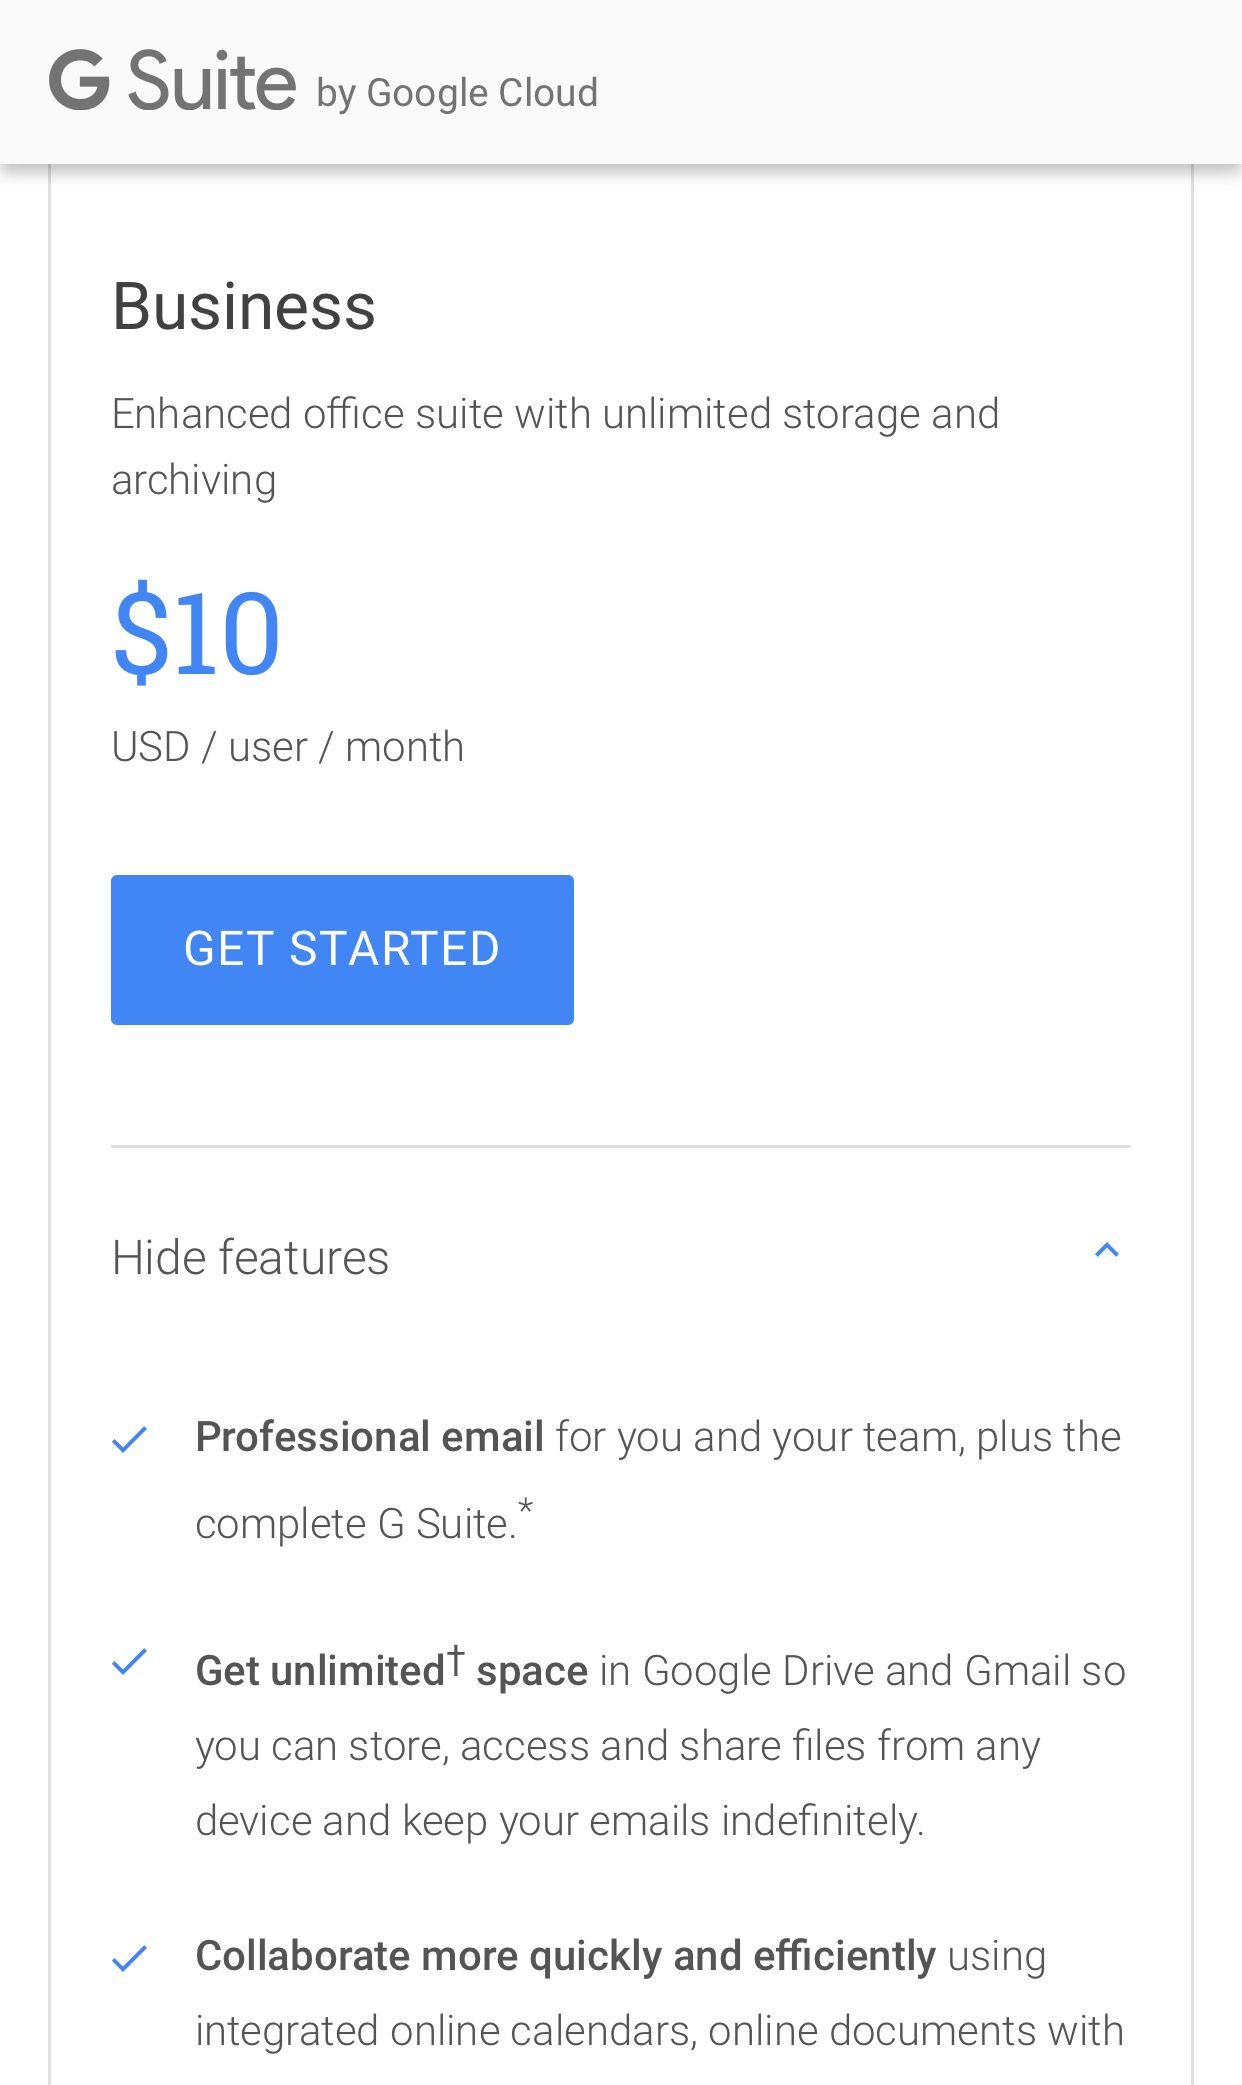 Professional Email For You And Your Team Plus The Complete G Suite Get 30gb Of Space In Google Drive And Online Calendar Success Business Video Conferencing